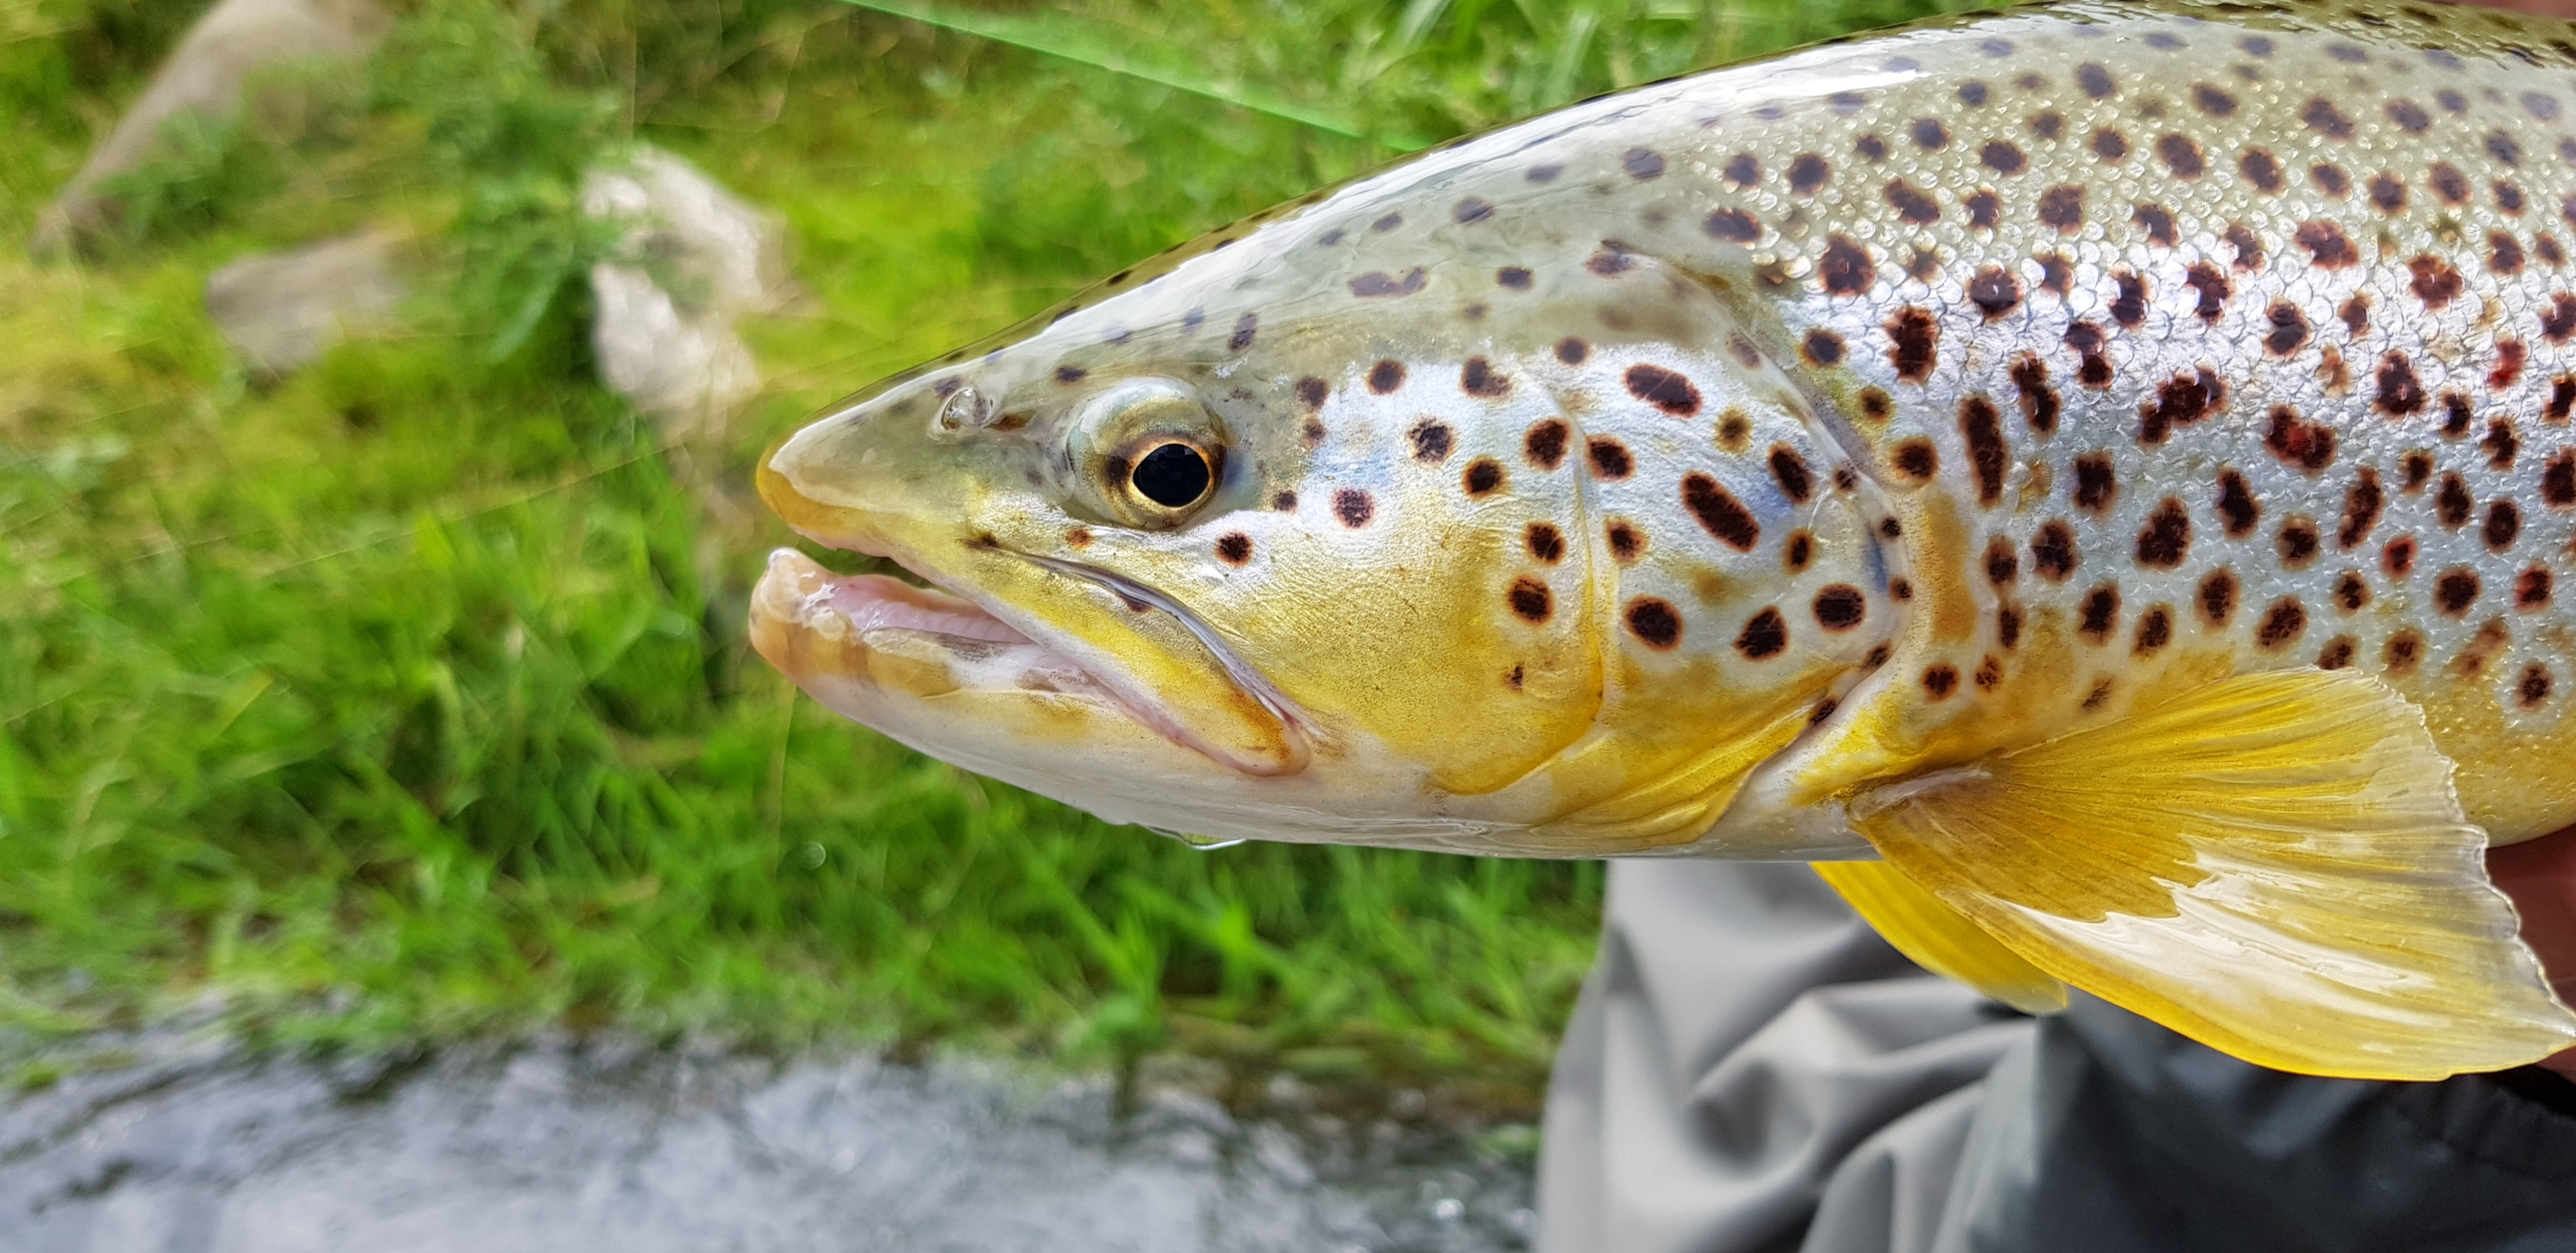 Another beauty from River bottom, nymph fishing cought that one